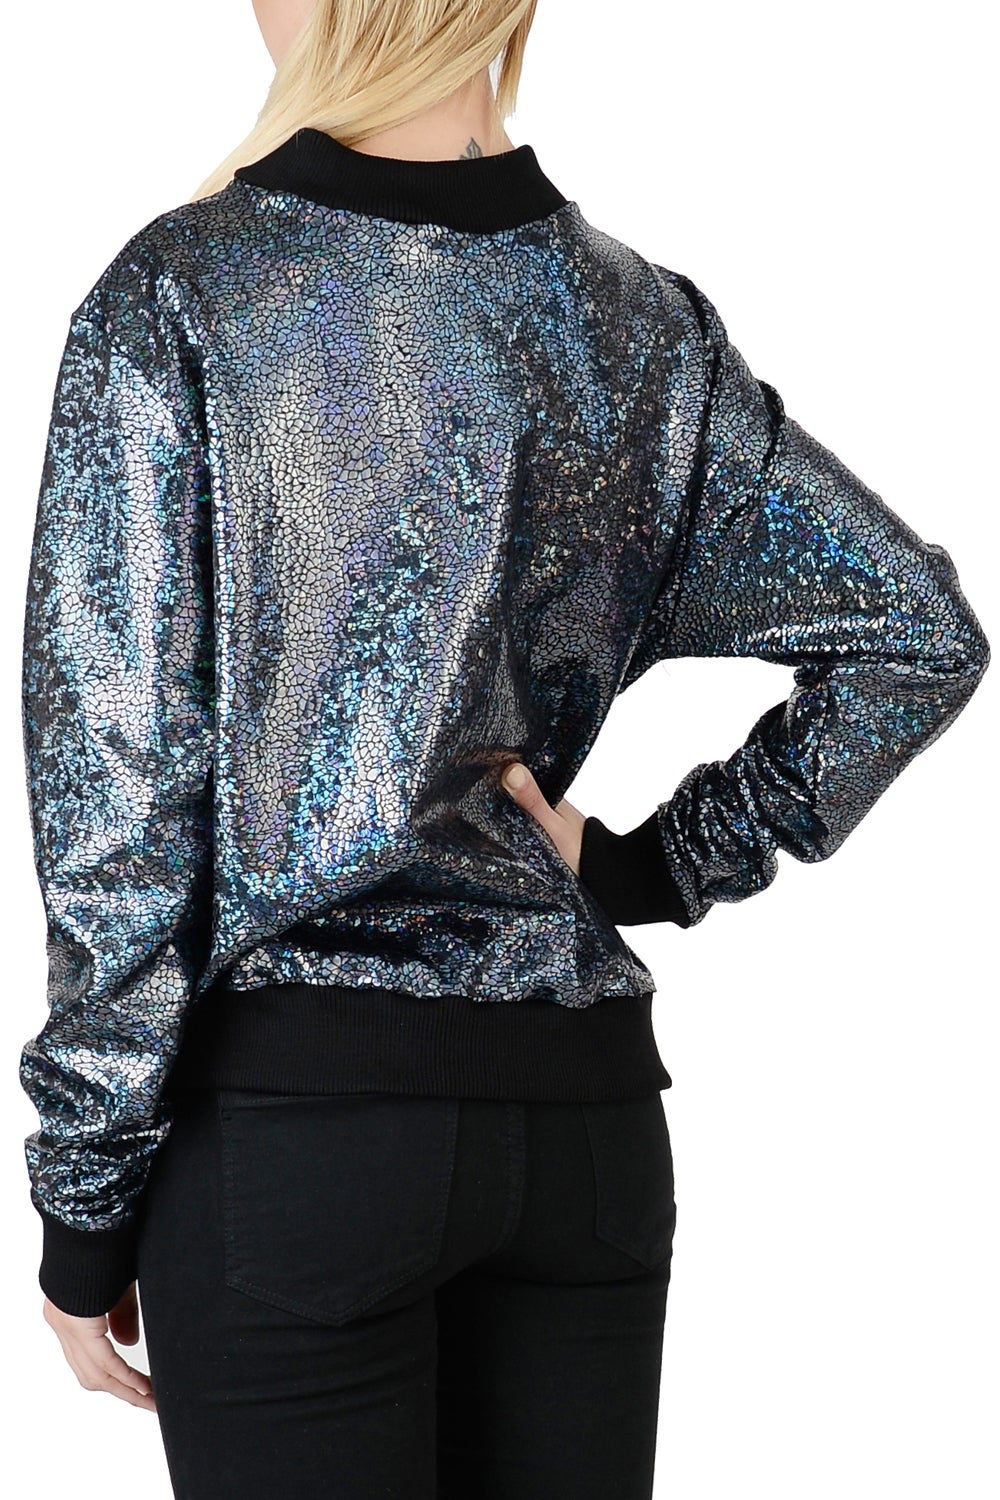 Image of Womens Black Disco Bomber Jacket